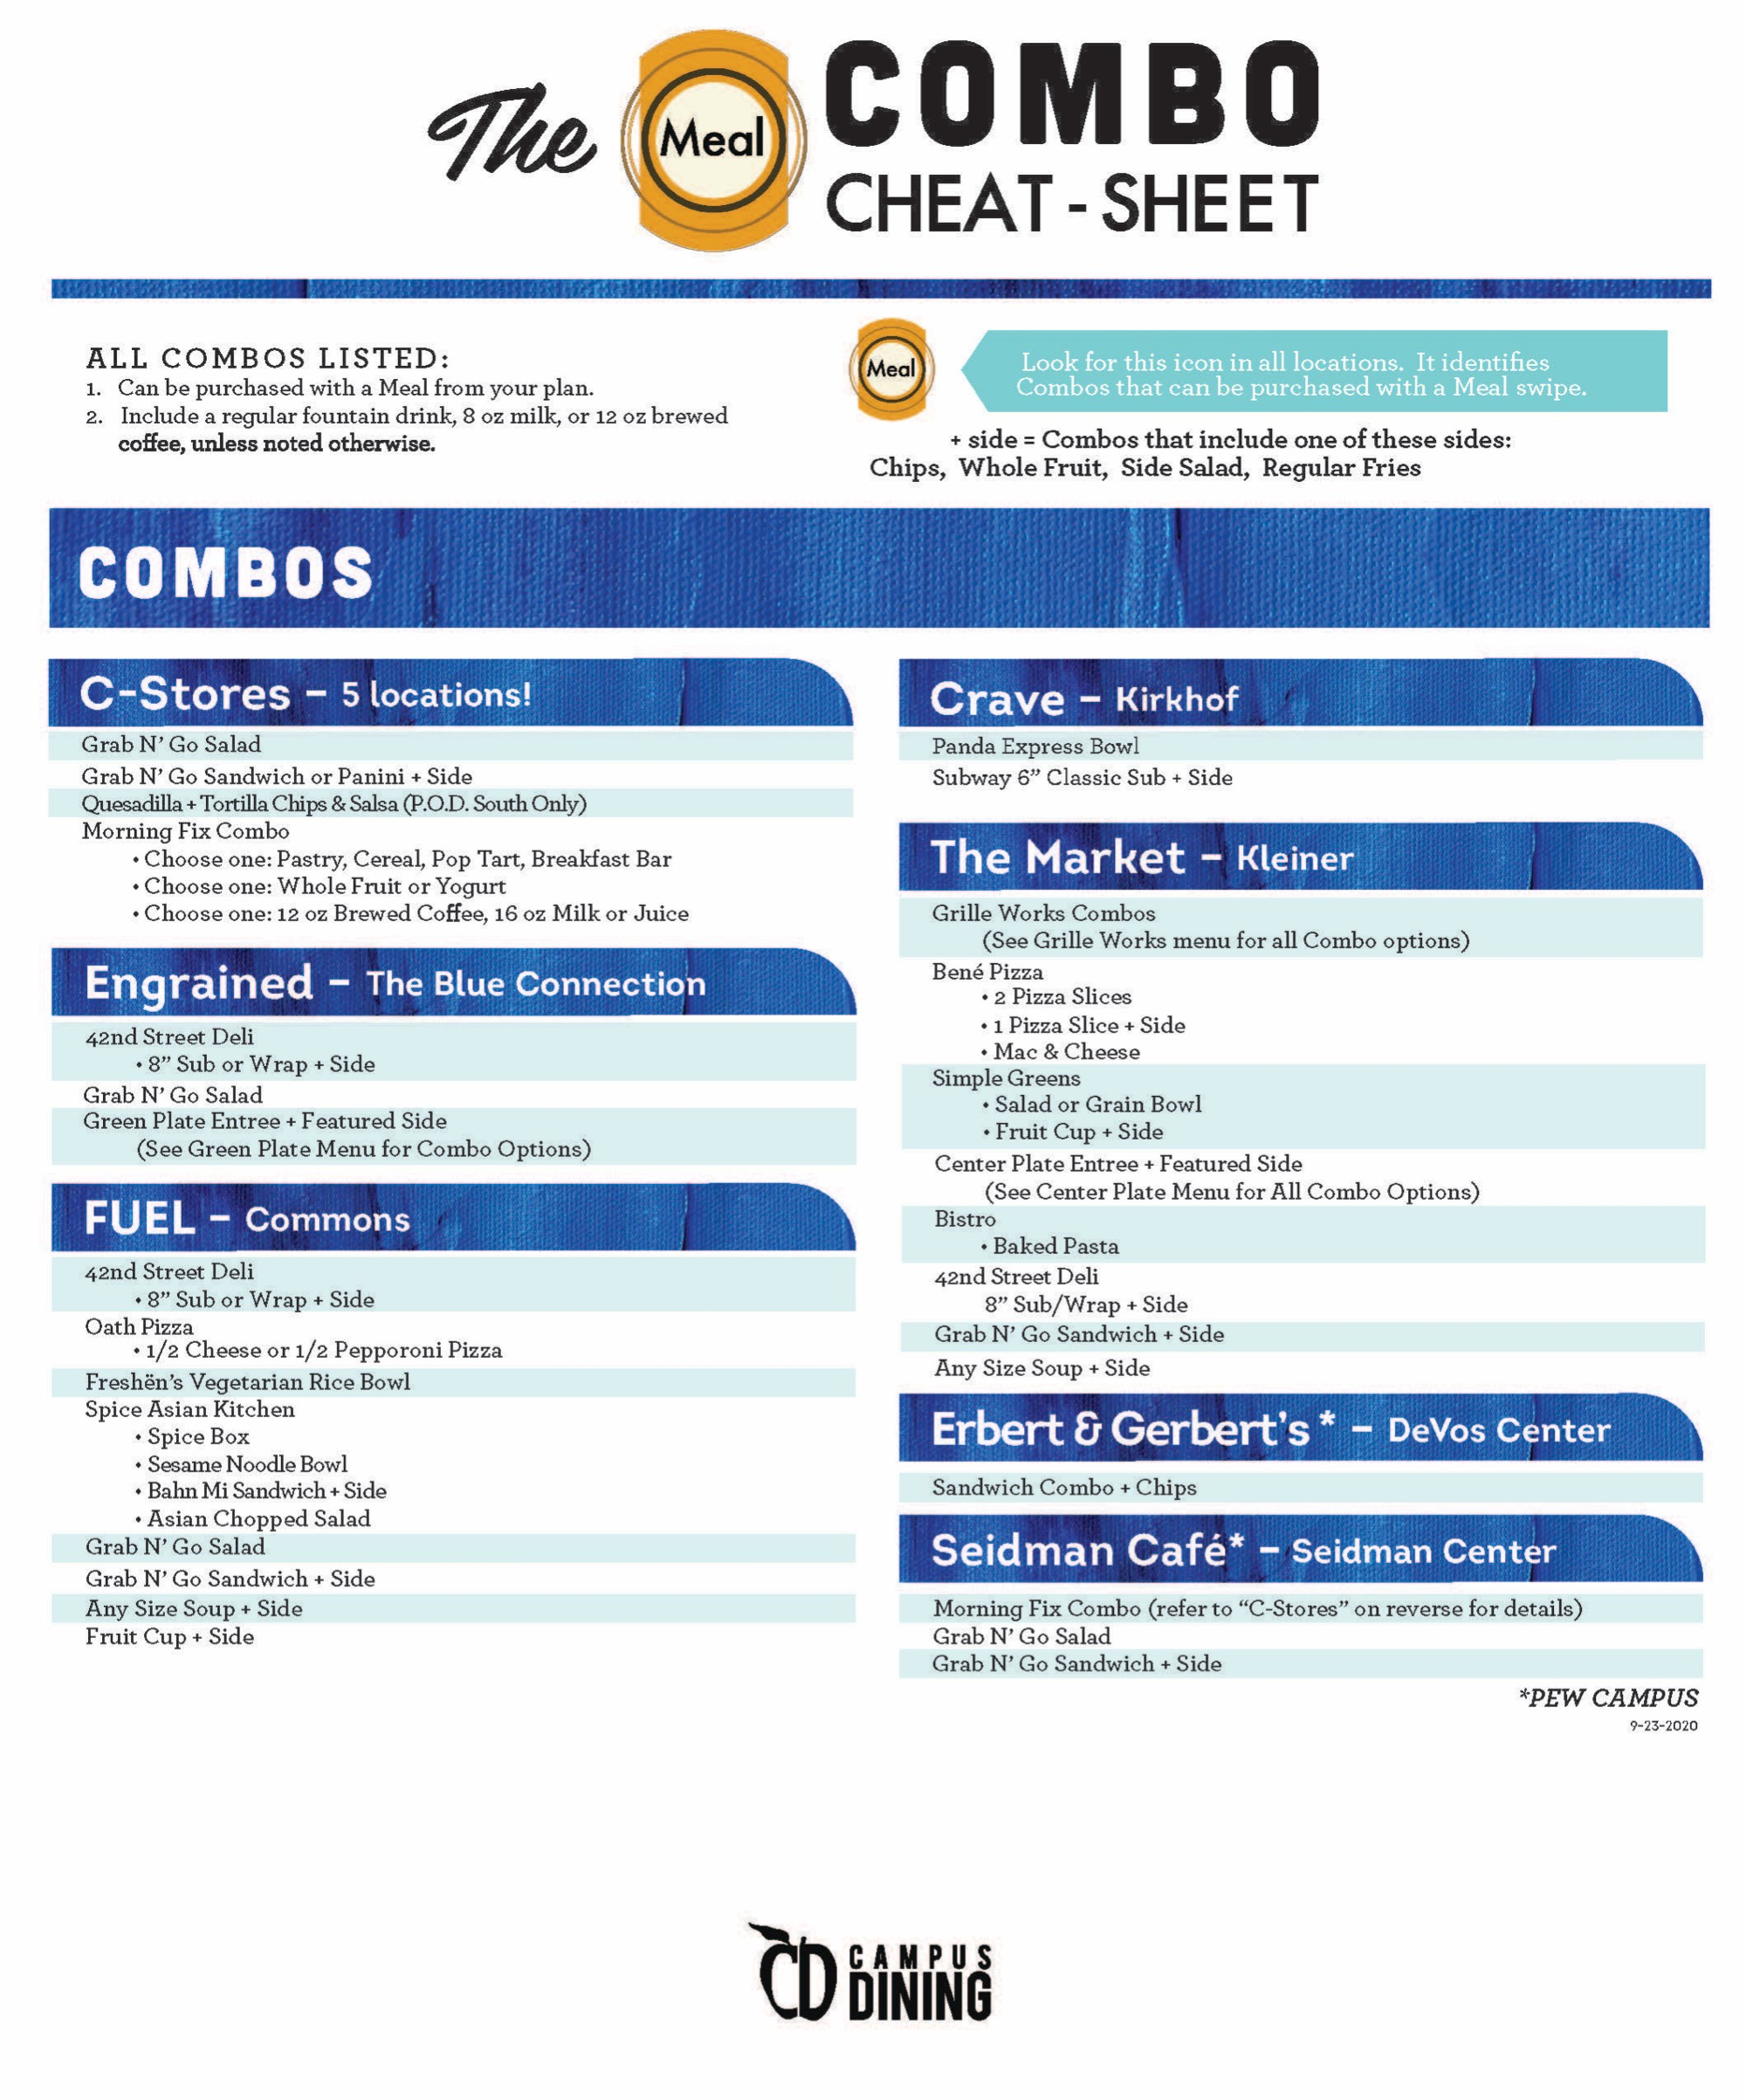 The Meal Combo Cheat-Sheet